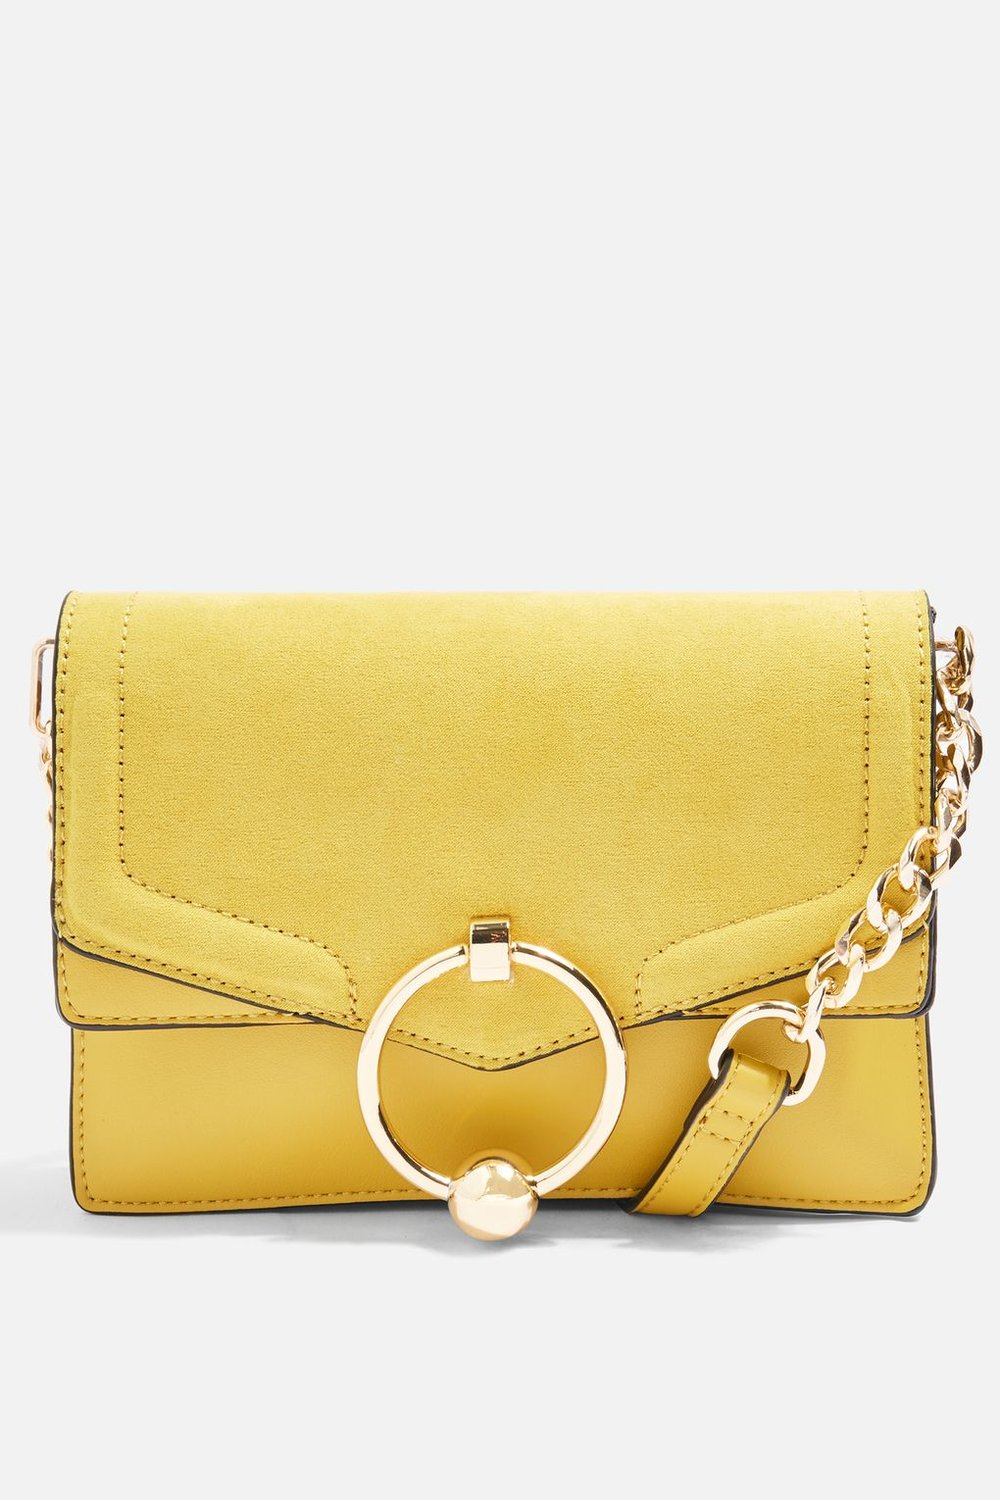 3. Leather bag, £95 by Topshop